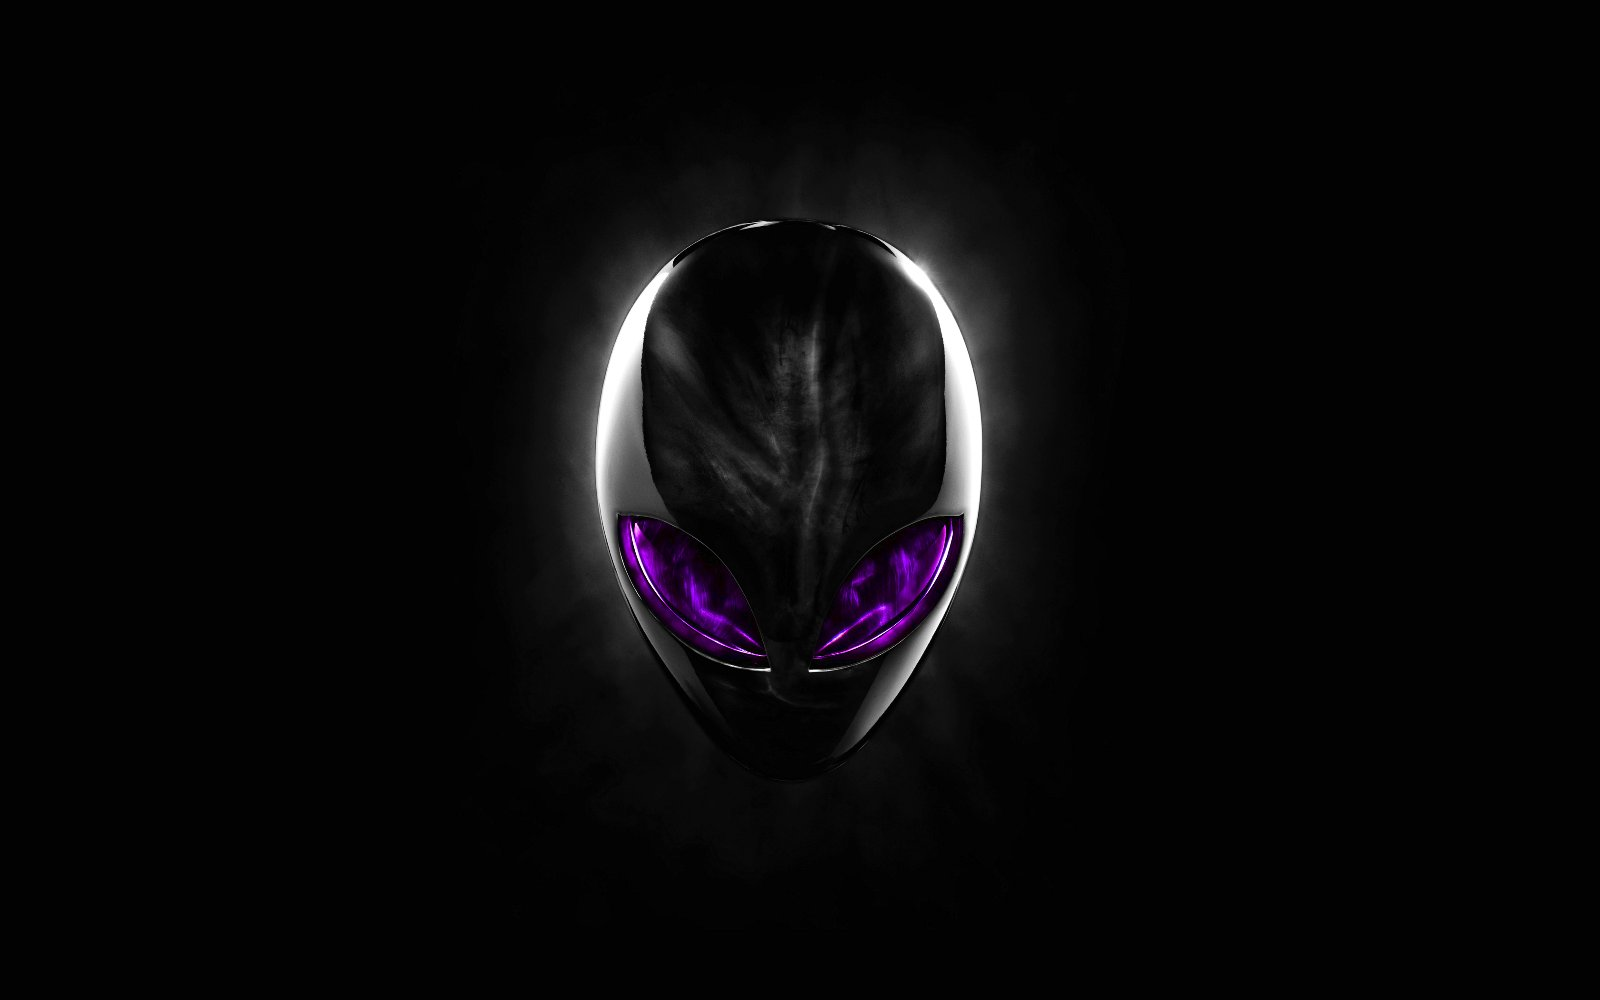 http://2.bp.blogspot.com/-PpD-5JPSmeE/T3QjxqwTeyI/AAAAAAAAC1Q/U7jxK79EHiE/s1600/Chrome_Alienware_Purple_Eyes_Widescreens_Wallpapers.png